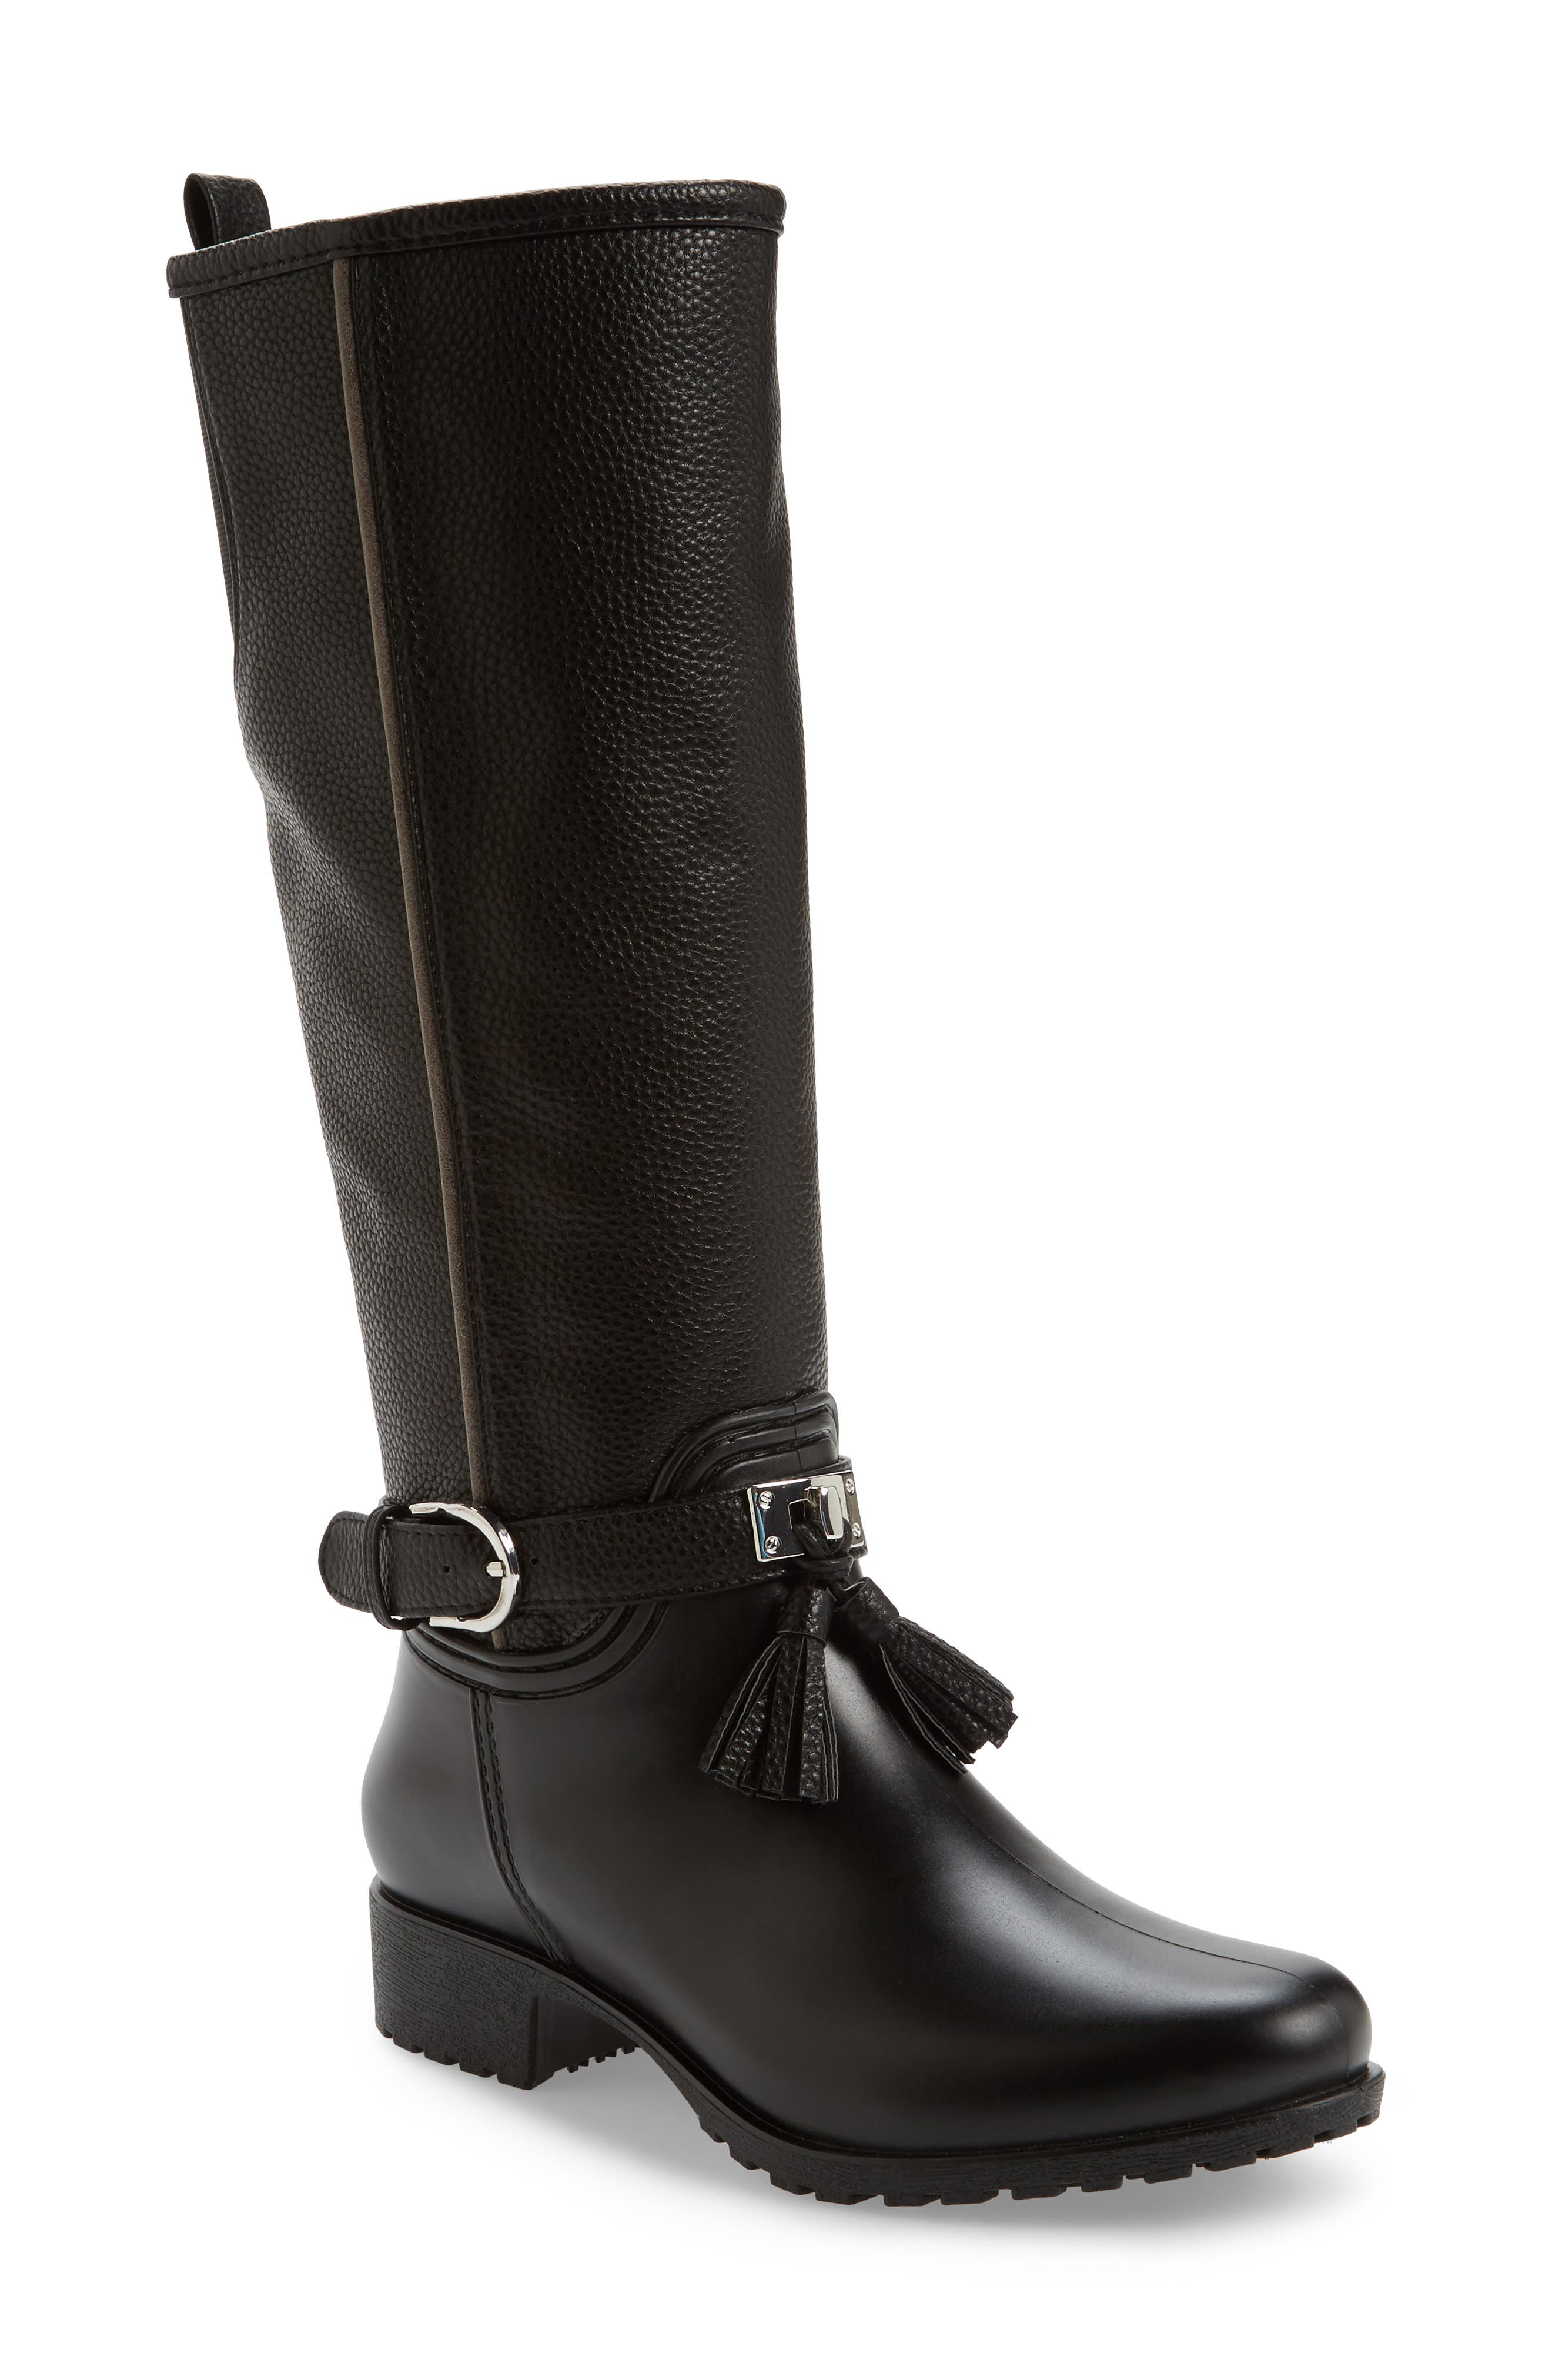 Dav Inverness Faux Shearling Lined Water Resistant Boot, Black